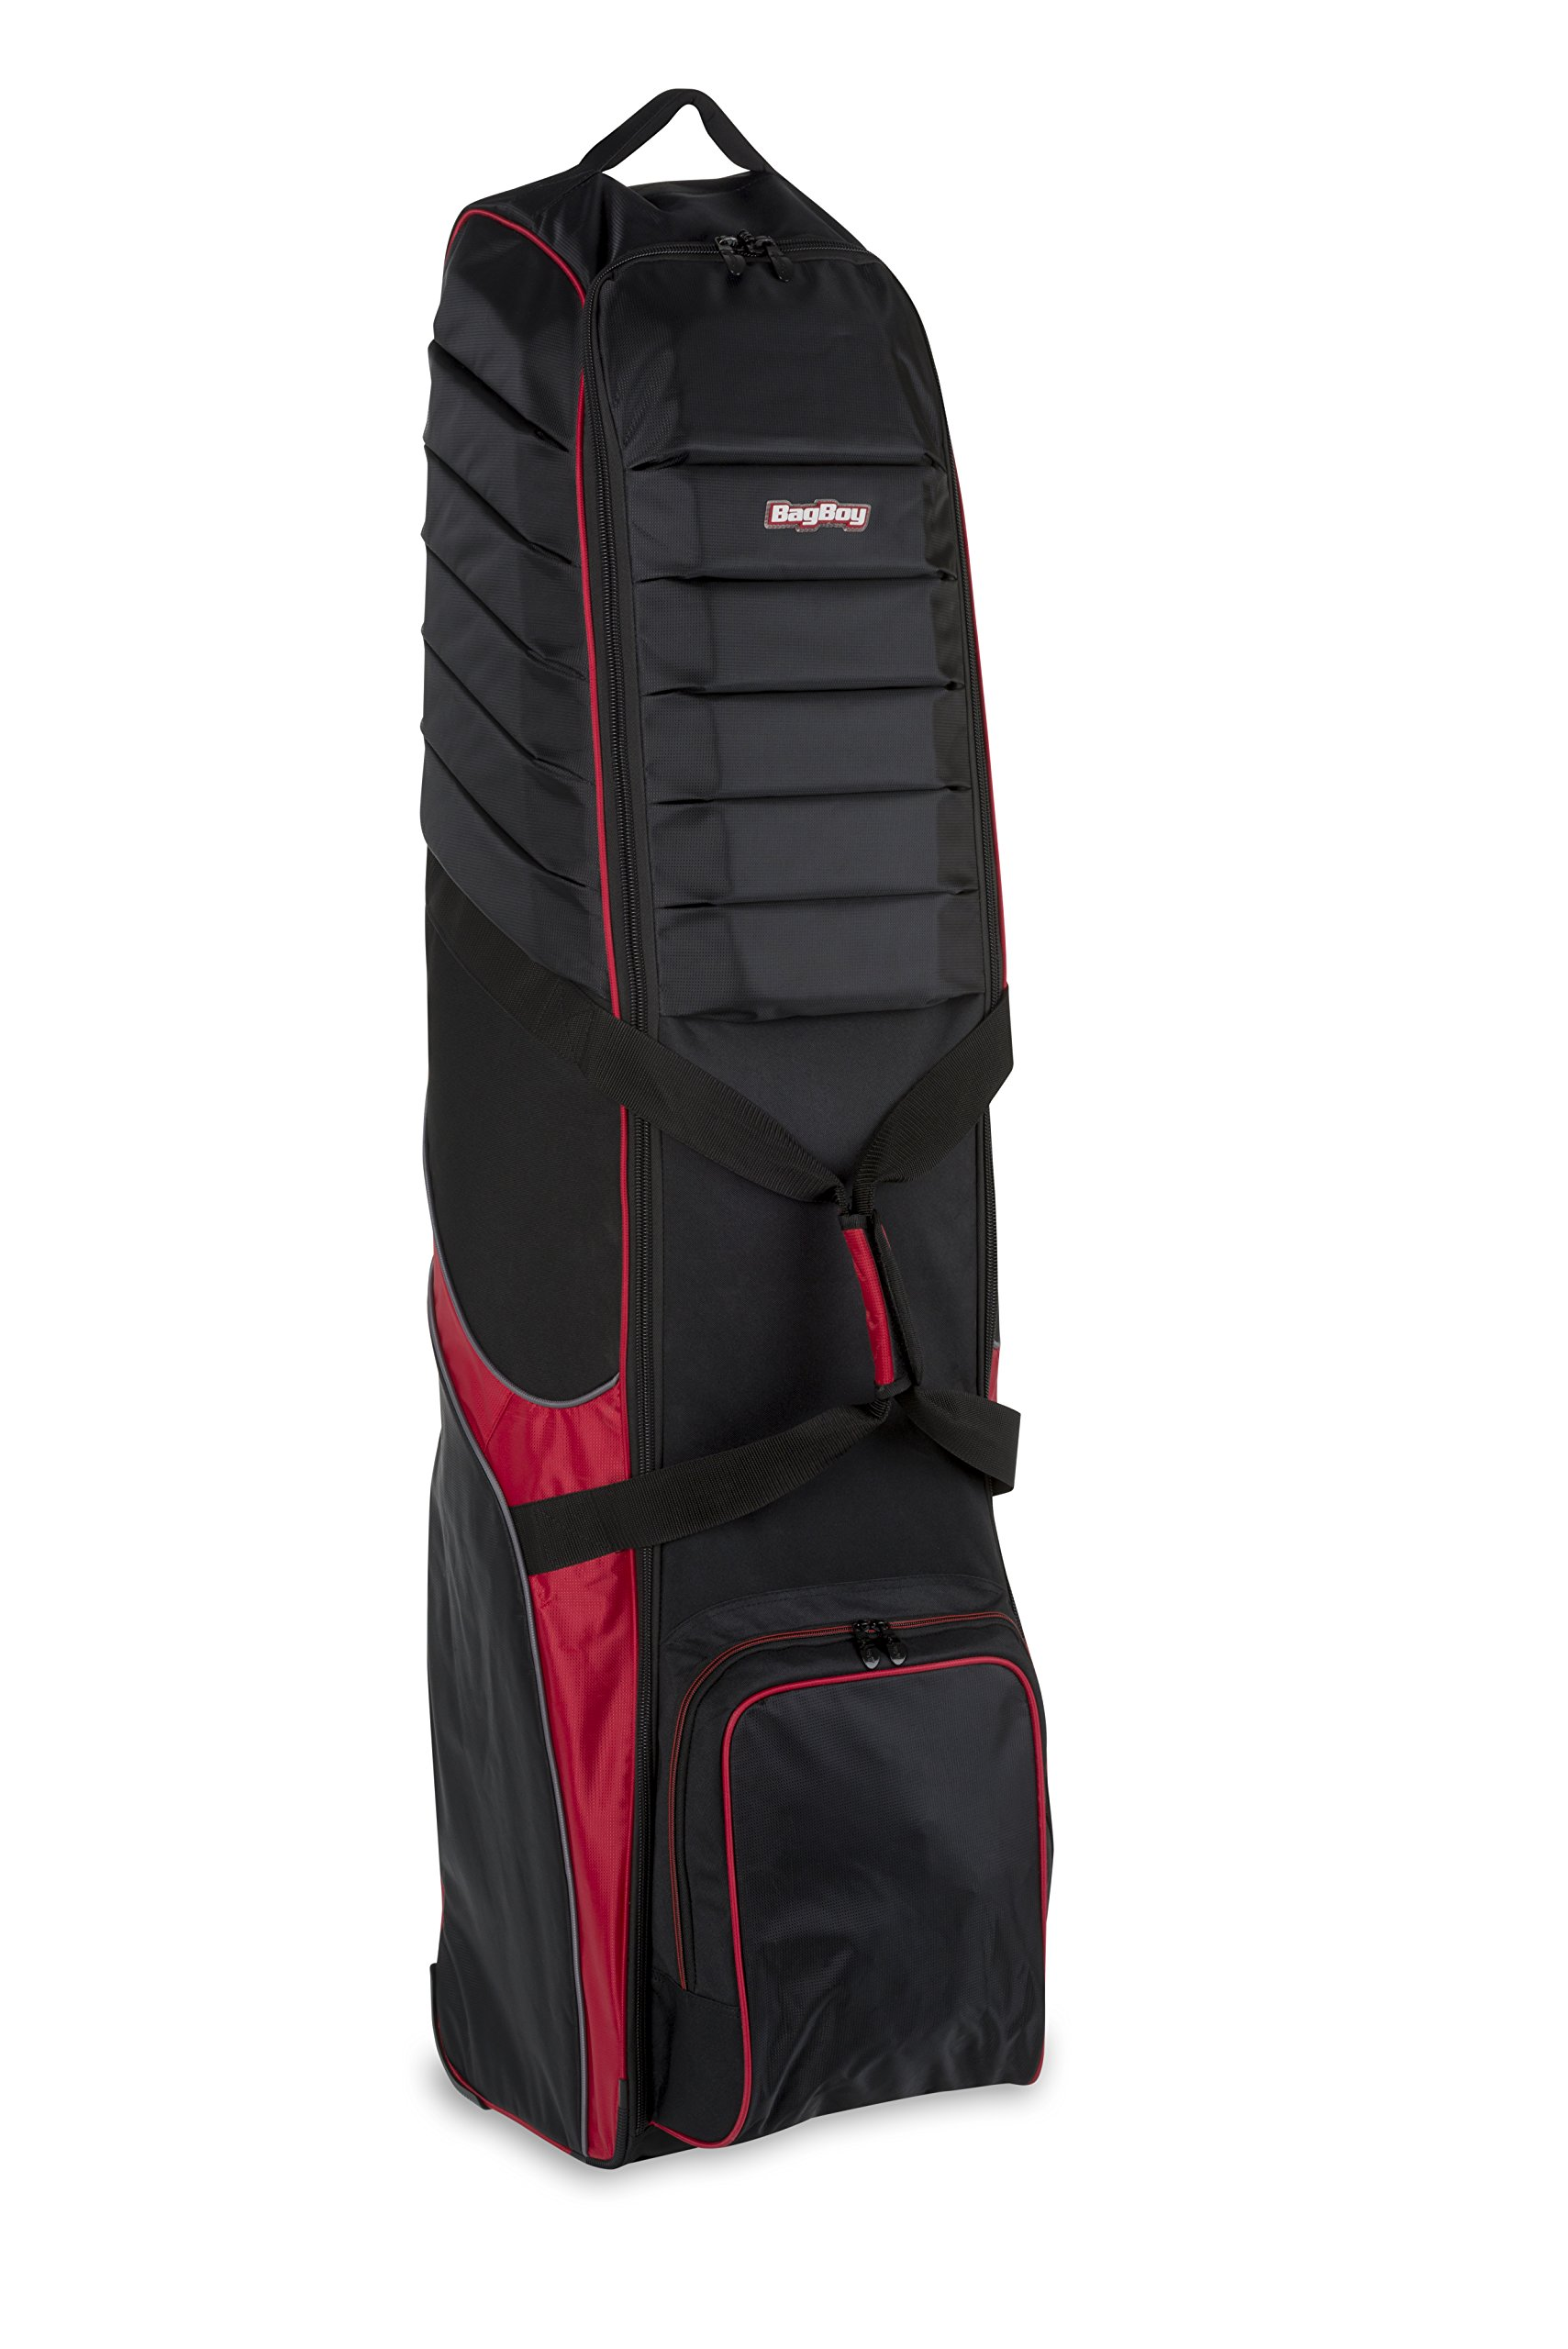 Bag Boy T-750 Wheeled Travel Cover Black/Red by Bag Boy